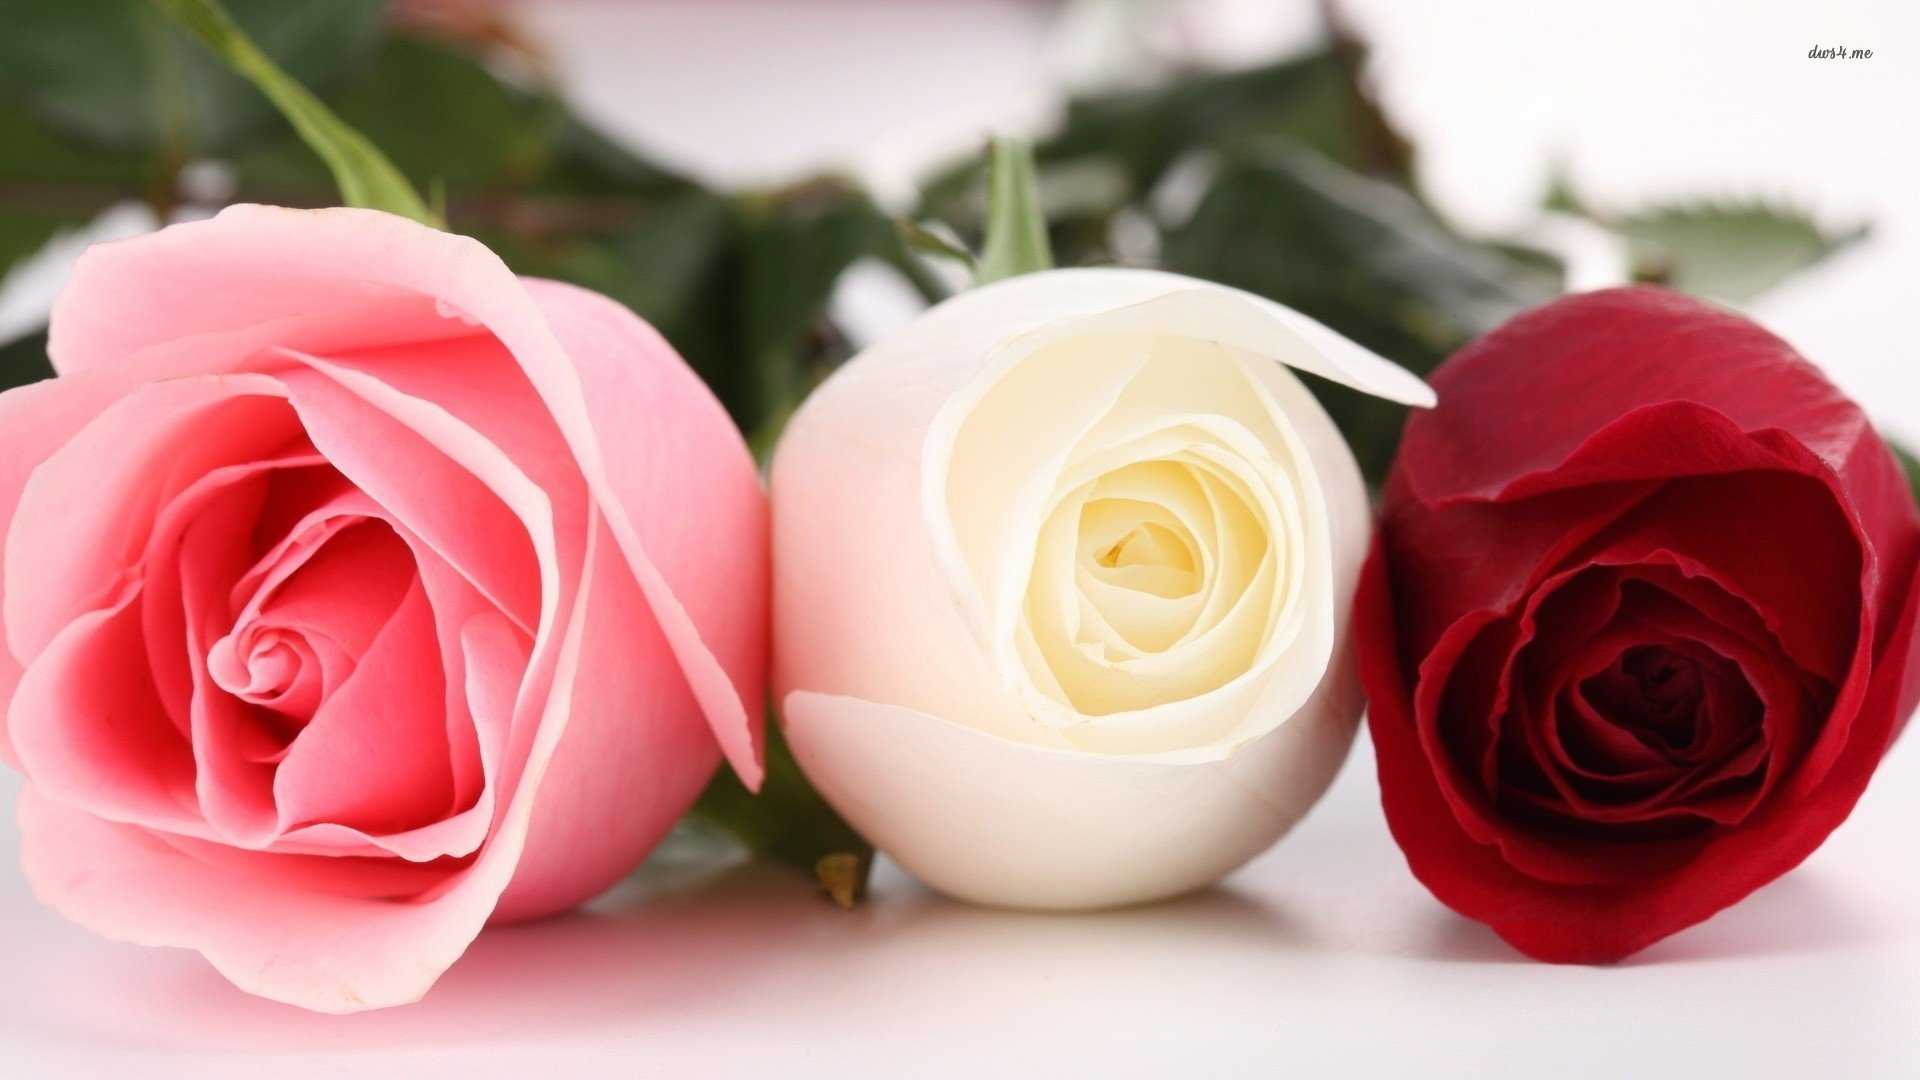 White Wallpaper with Pink Roses - WallpaperSafari